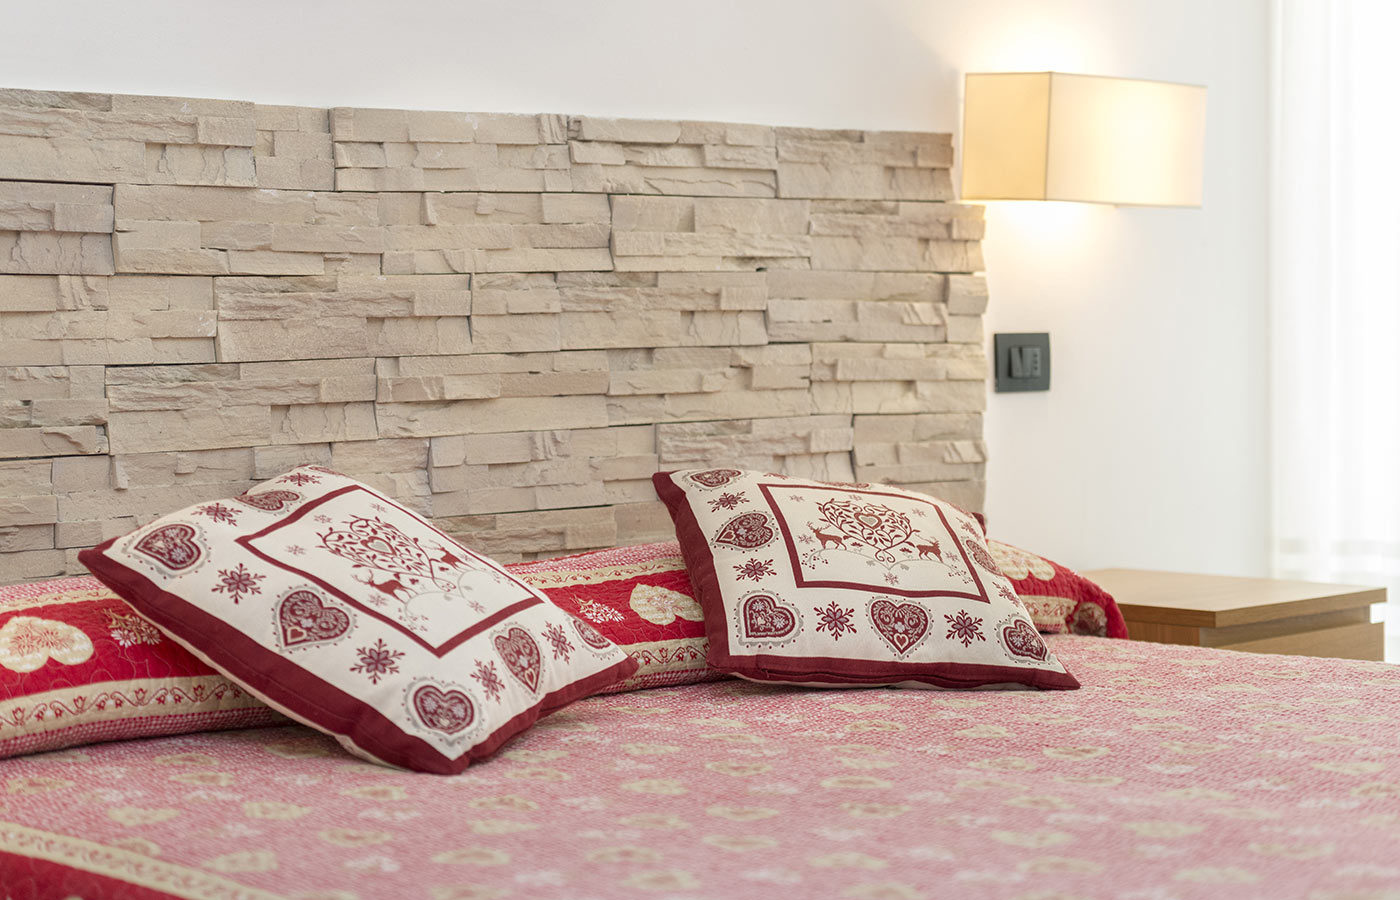 Red and white pillows on a bed of Hotel Alpino